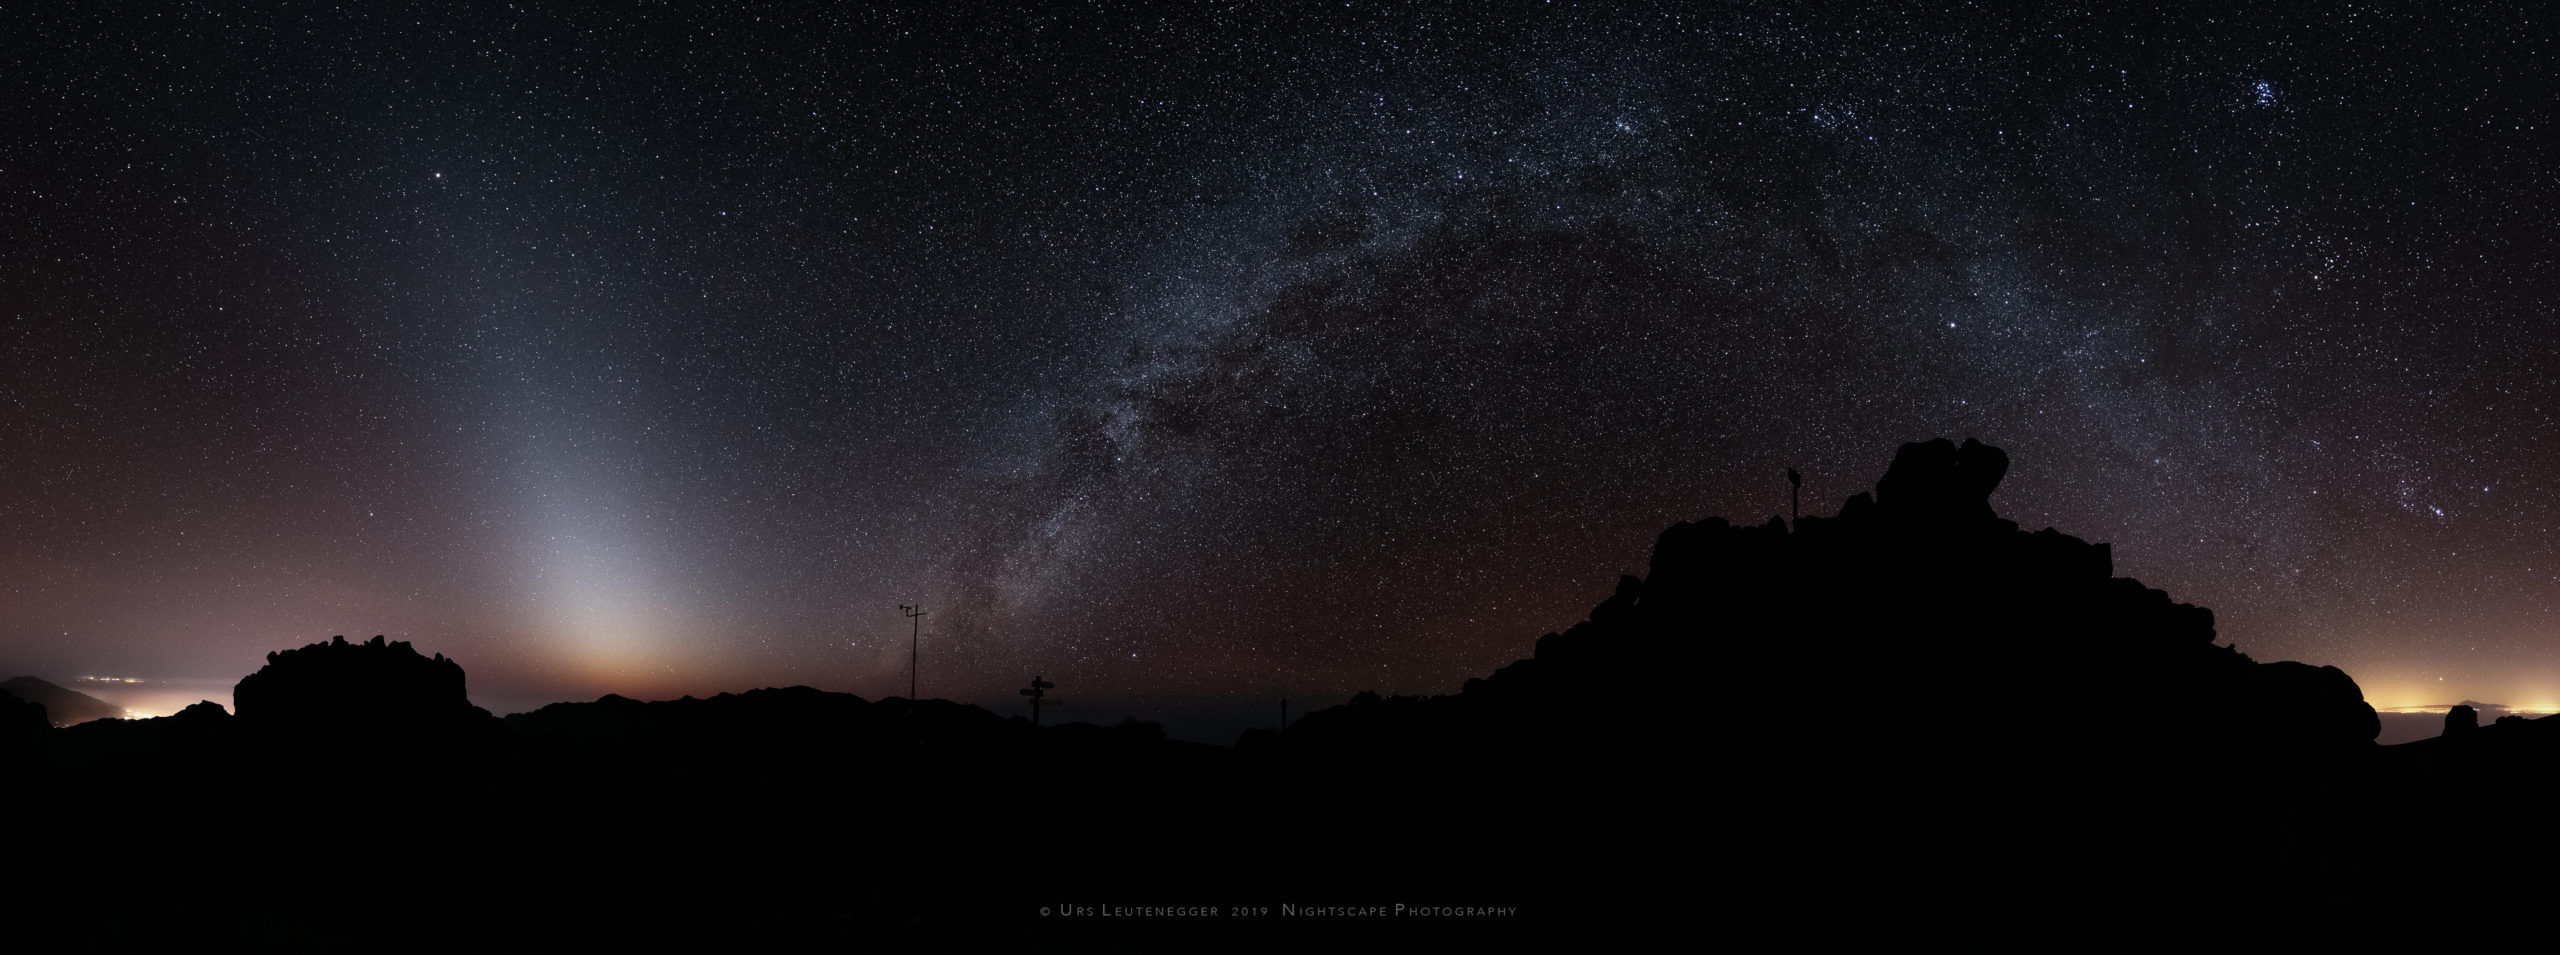 Zodiacal light with Milky Way over silhouette of Pico de la Cruz, La Palma. Light pollution from Los Llanos de Aridane and Tenerife at horizon.